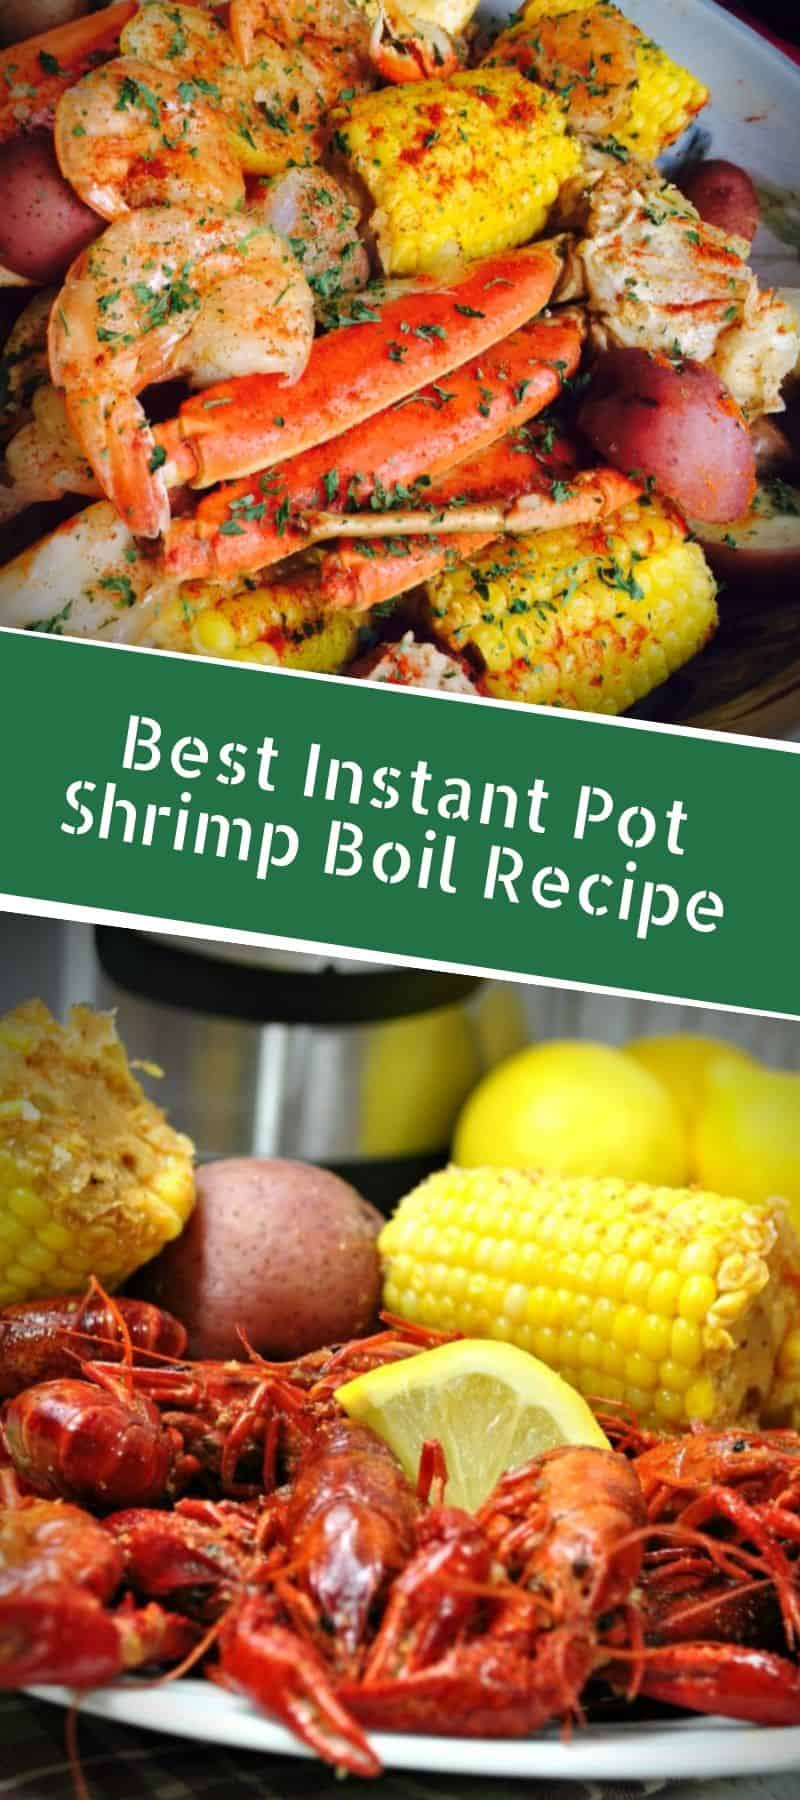 Best Instant Pot Shrimp Boil Recipe 3